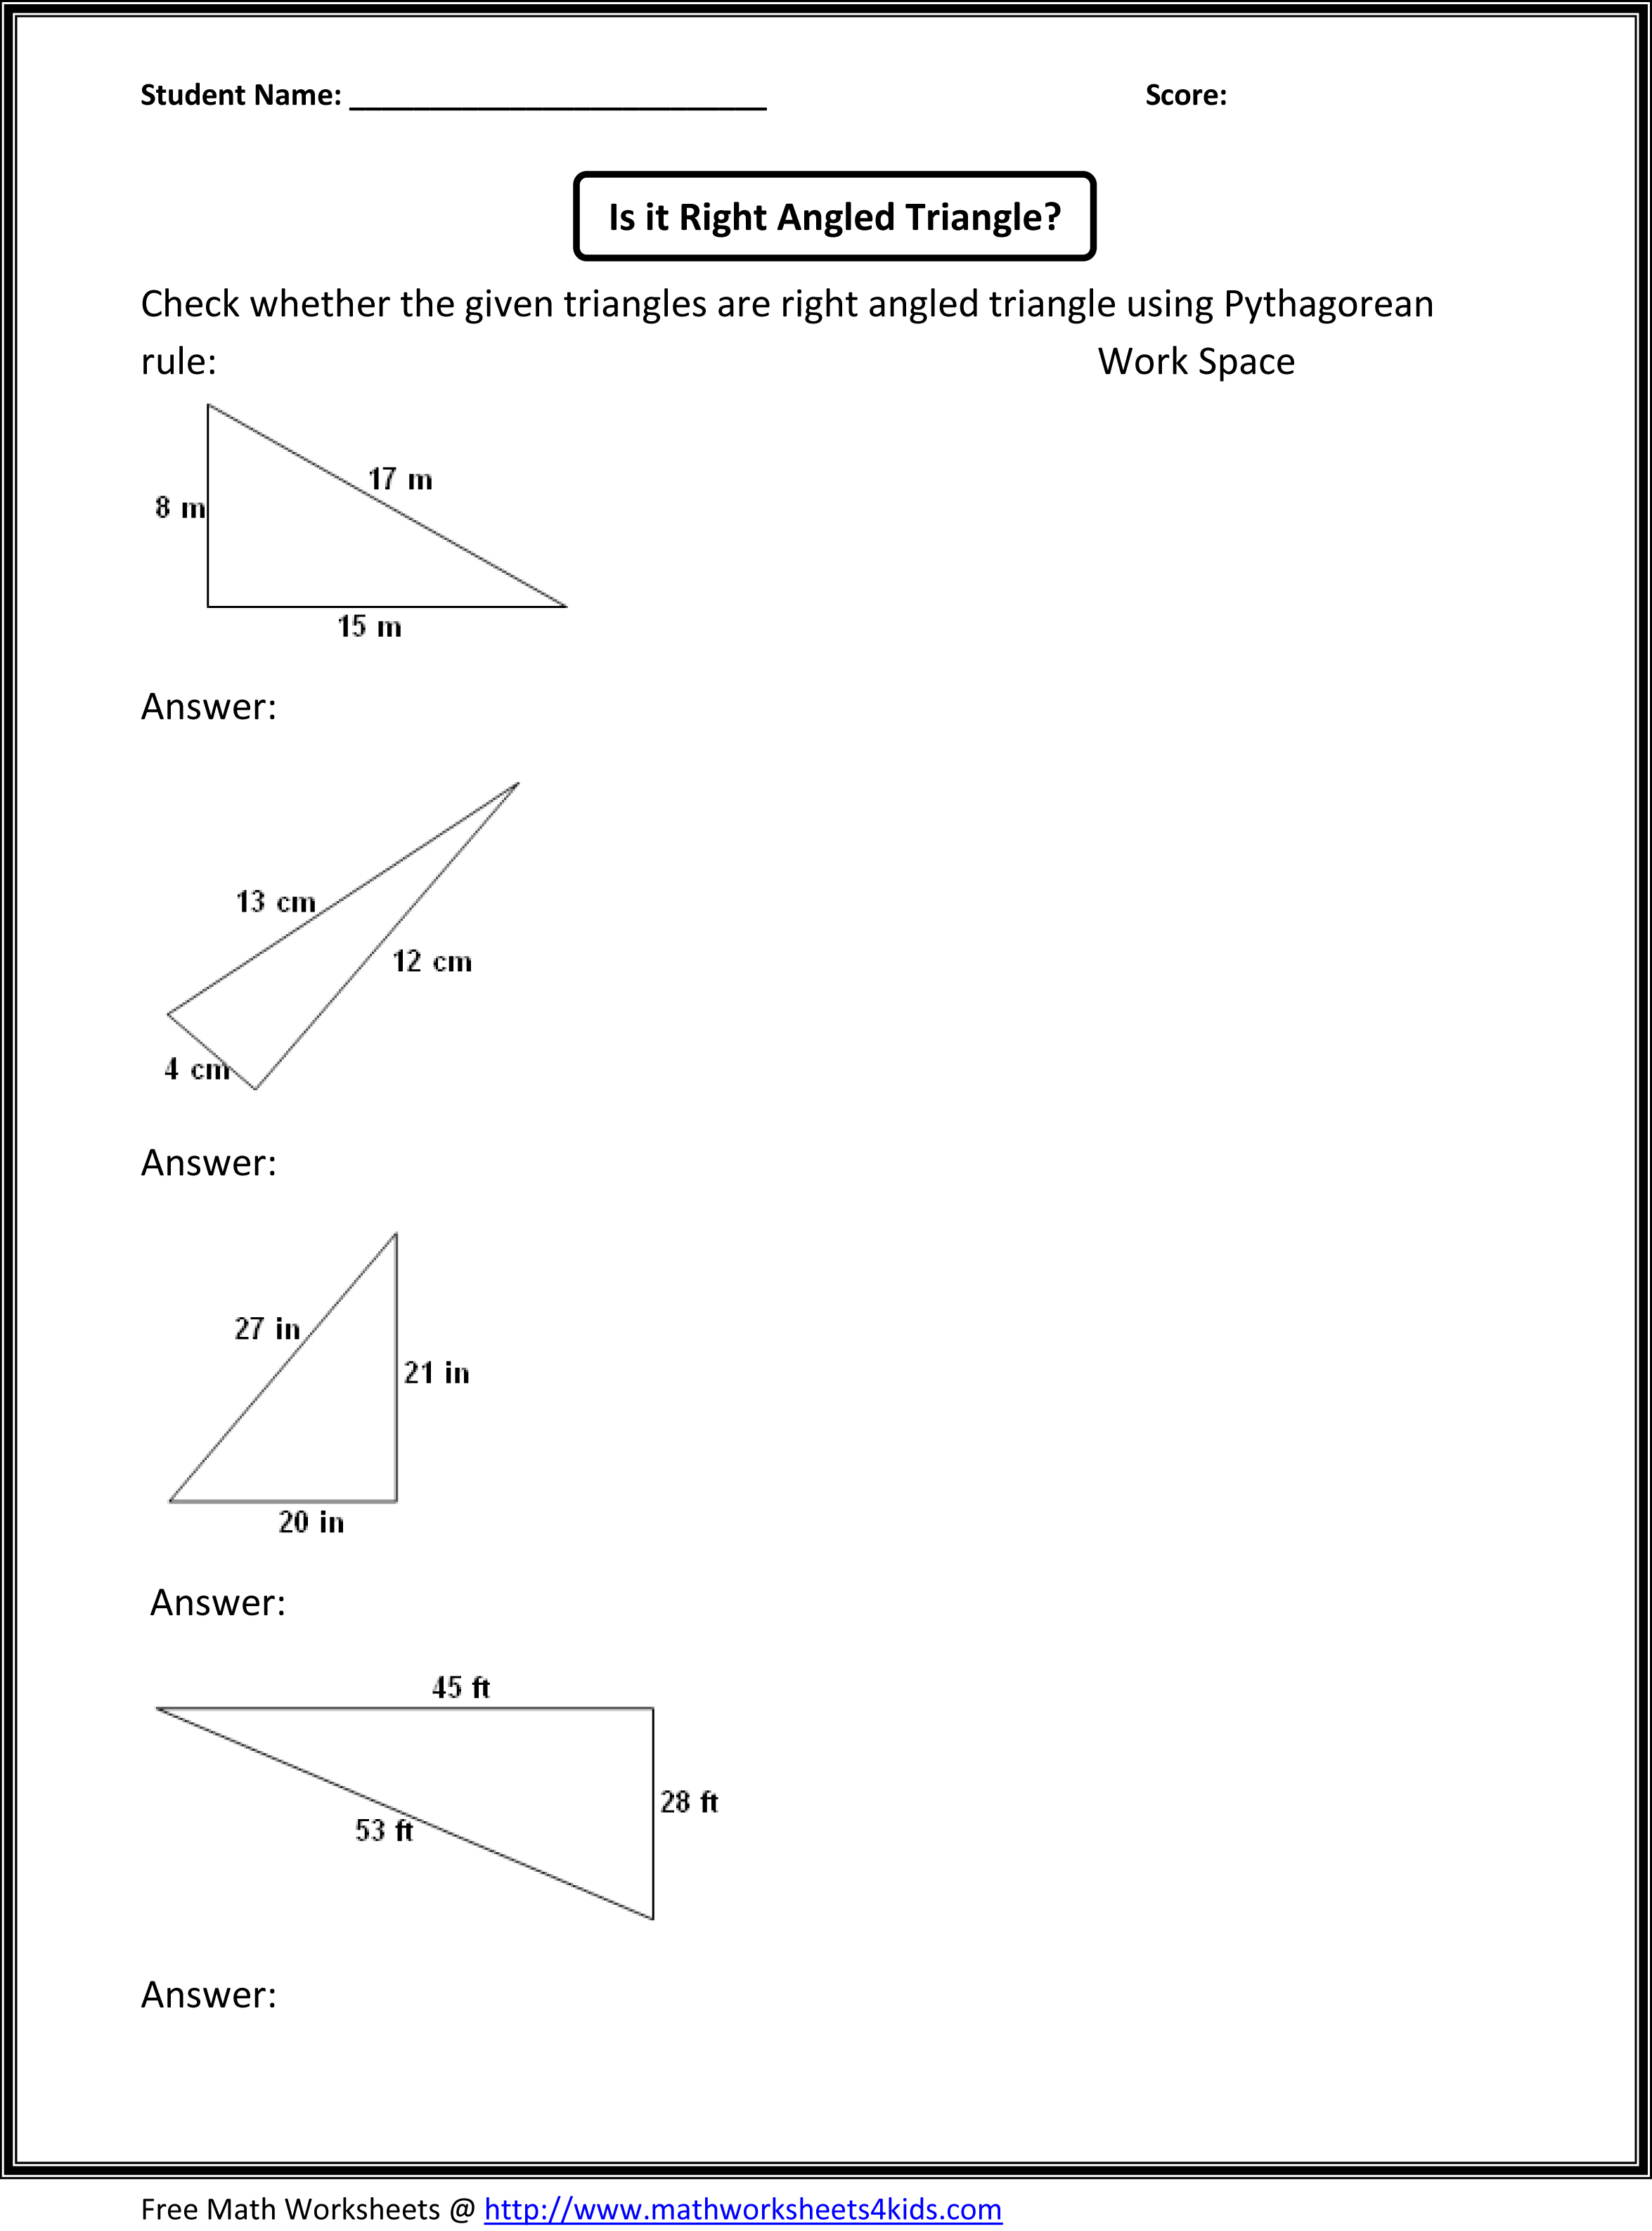 Grade 8 Math Worksheets Free Worksheets Library – 8th Grade Math Worksheets Pdf